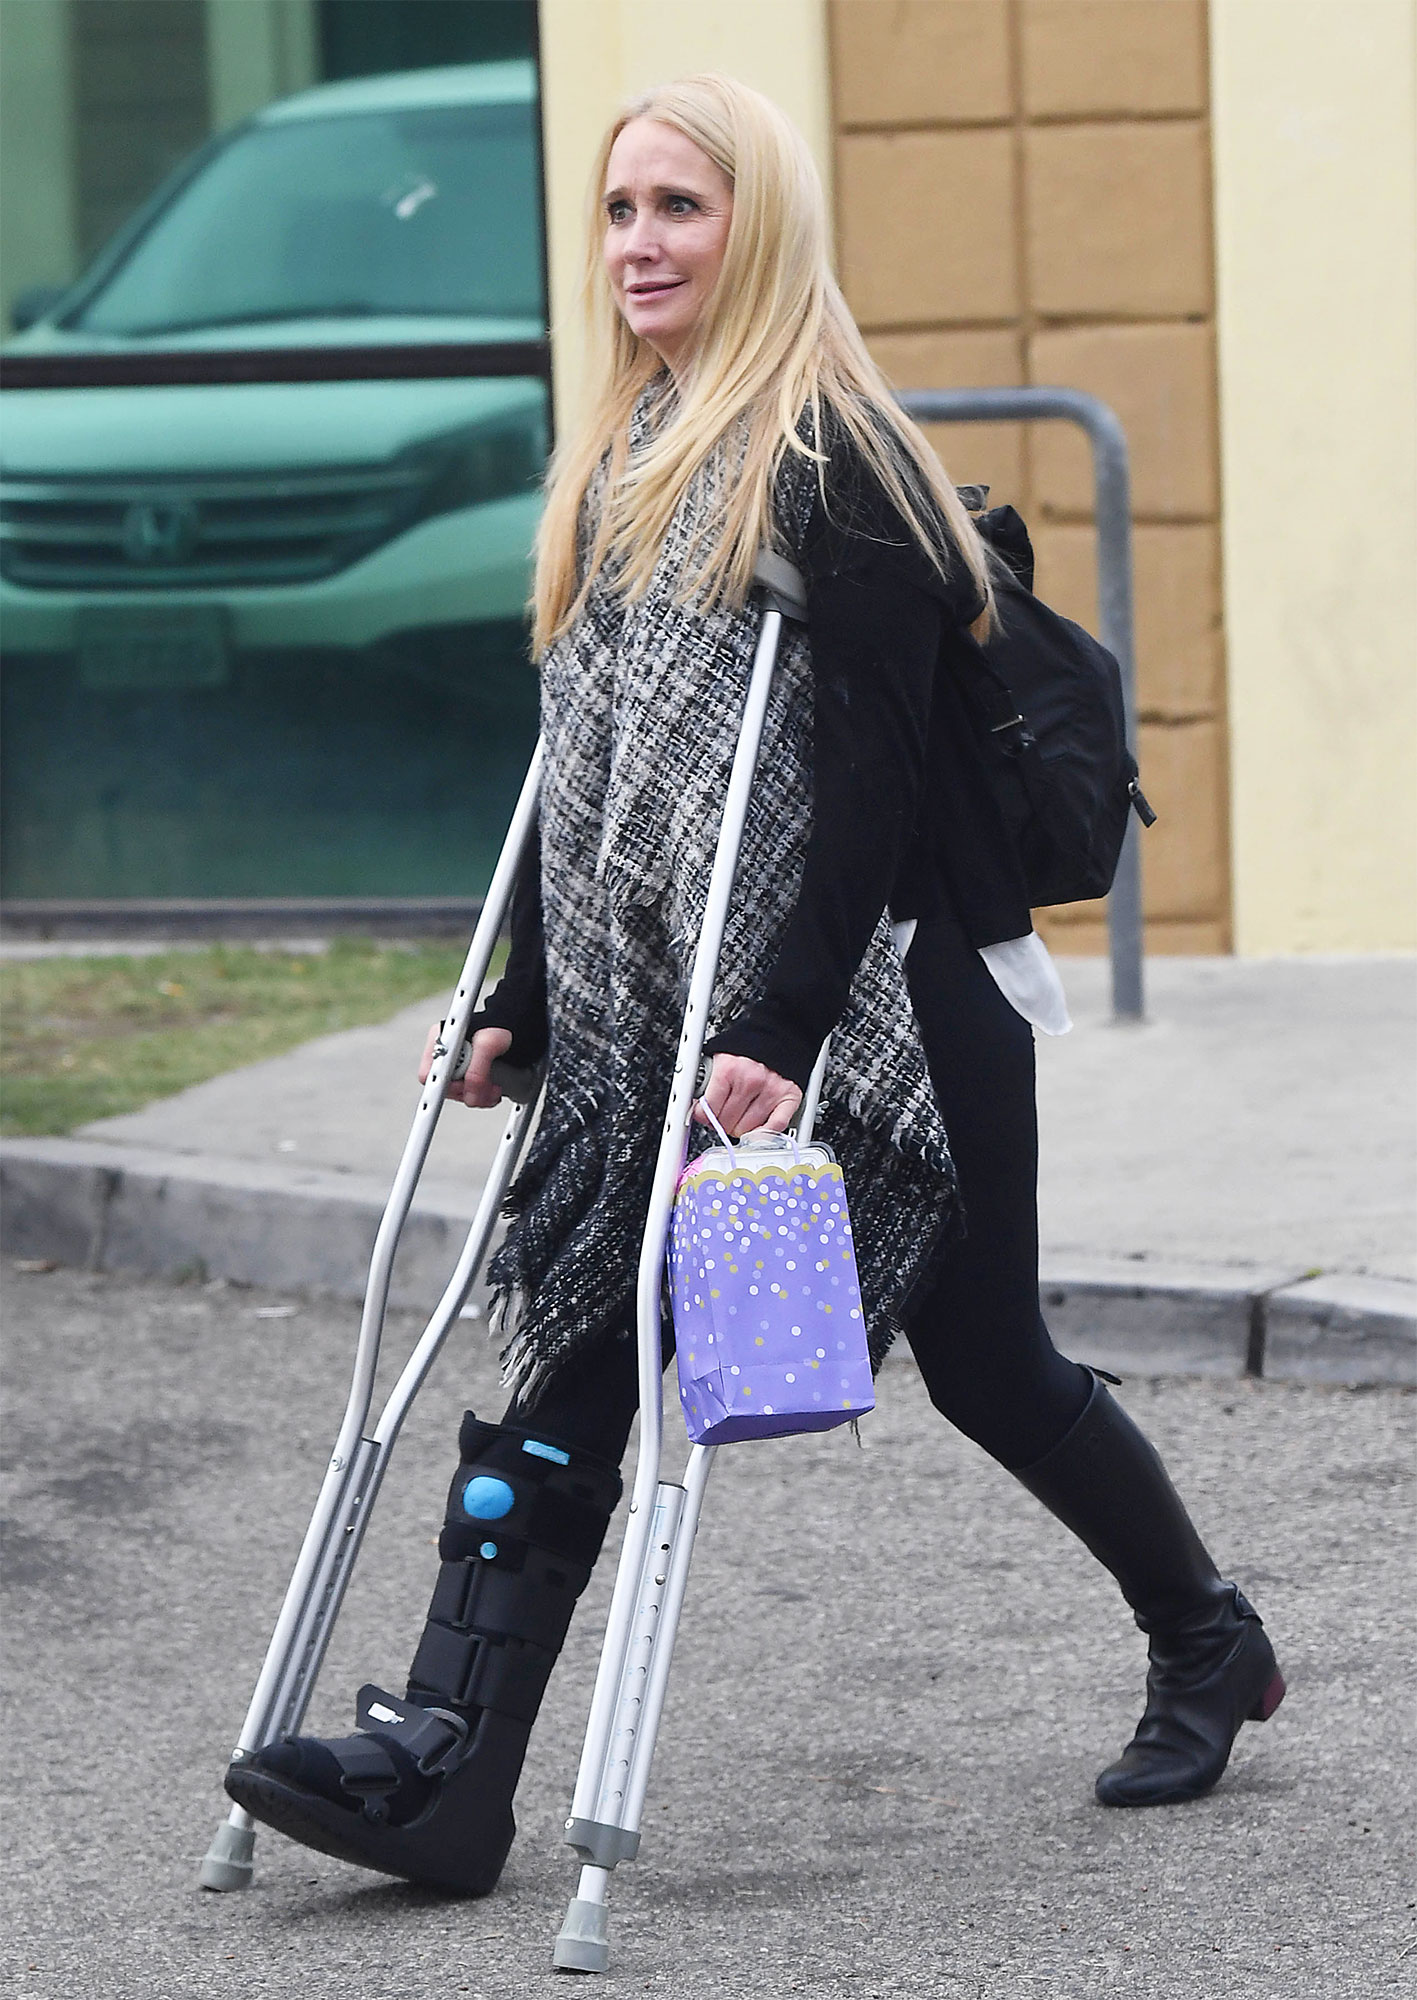 EXCLUSIVE: Kim Richards uses a pair of crutches to walk with a cast on her right leg at niece's birthday party with sister Kyle